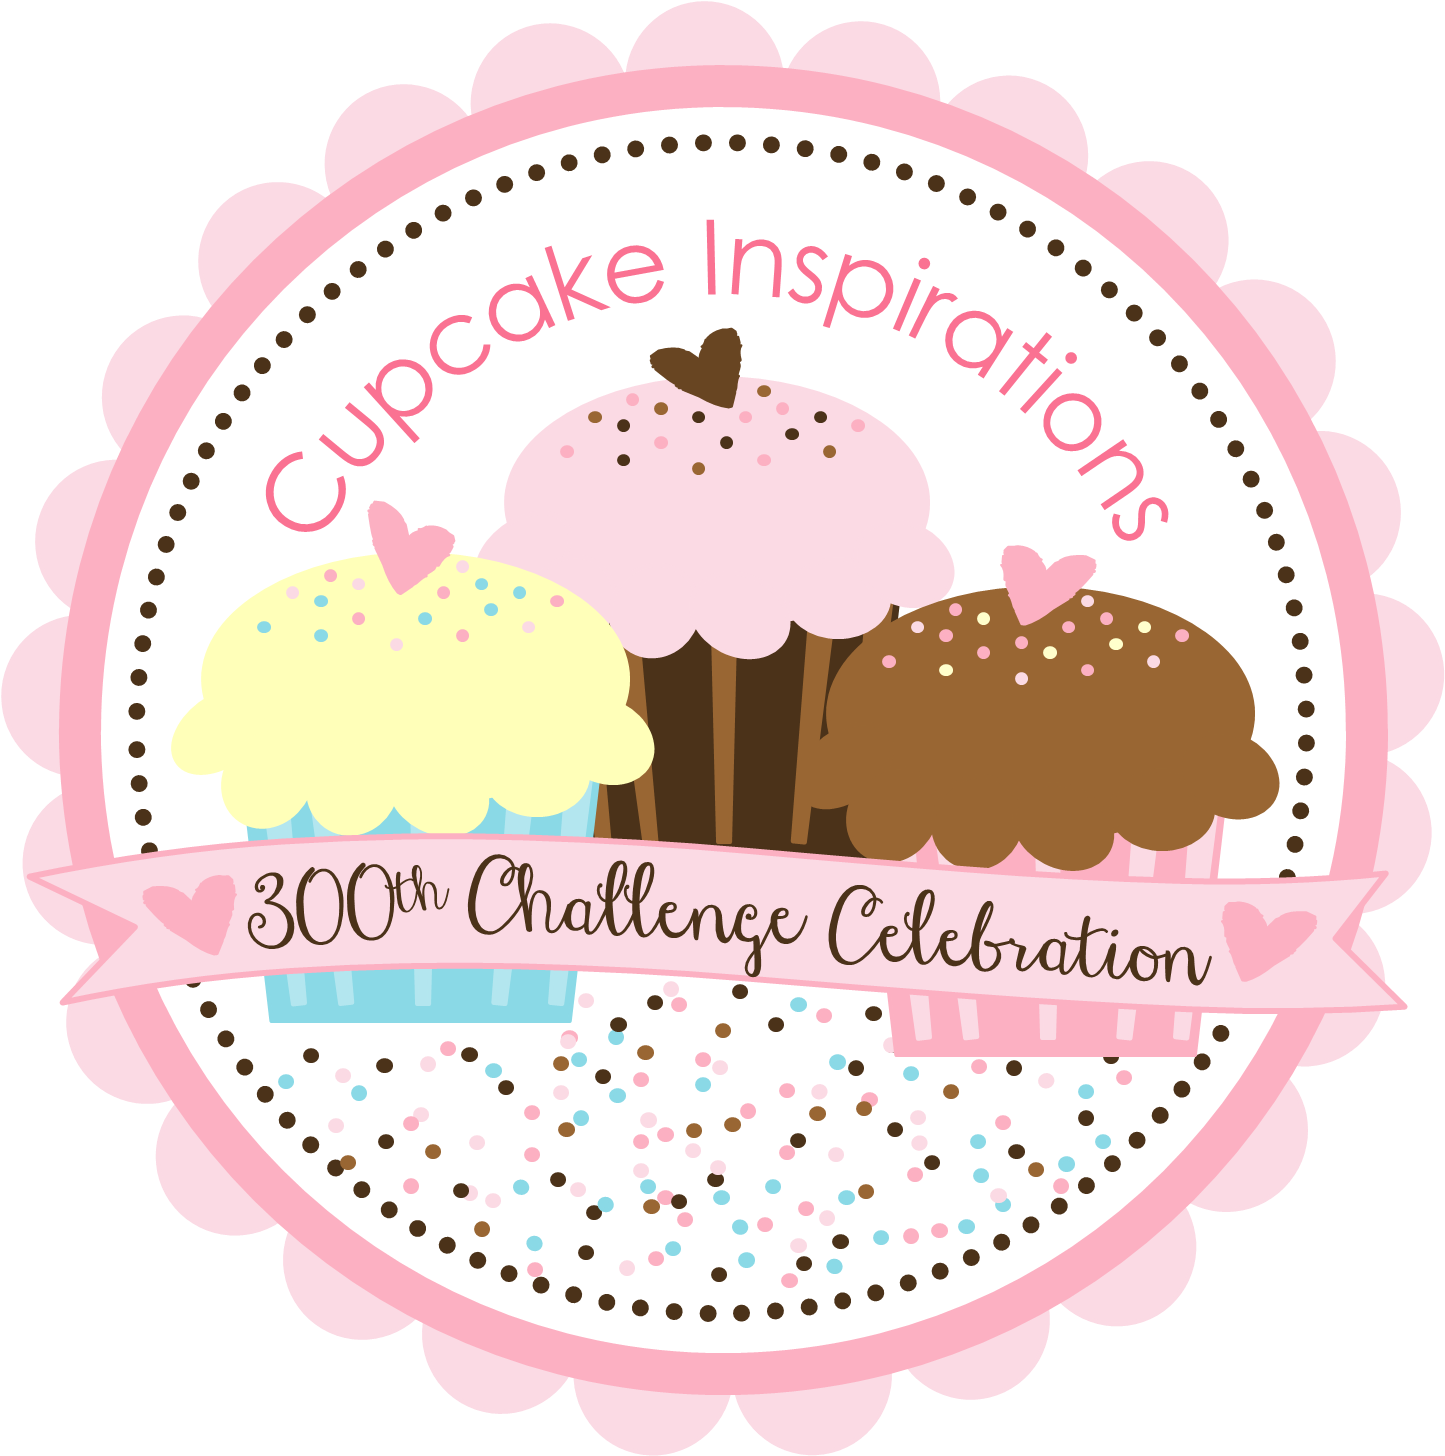 http://cupcakeinspirations.blogspot.com/2015/03/300th-challenge-celebration.html